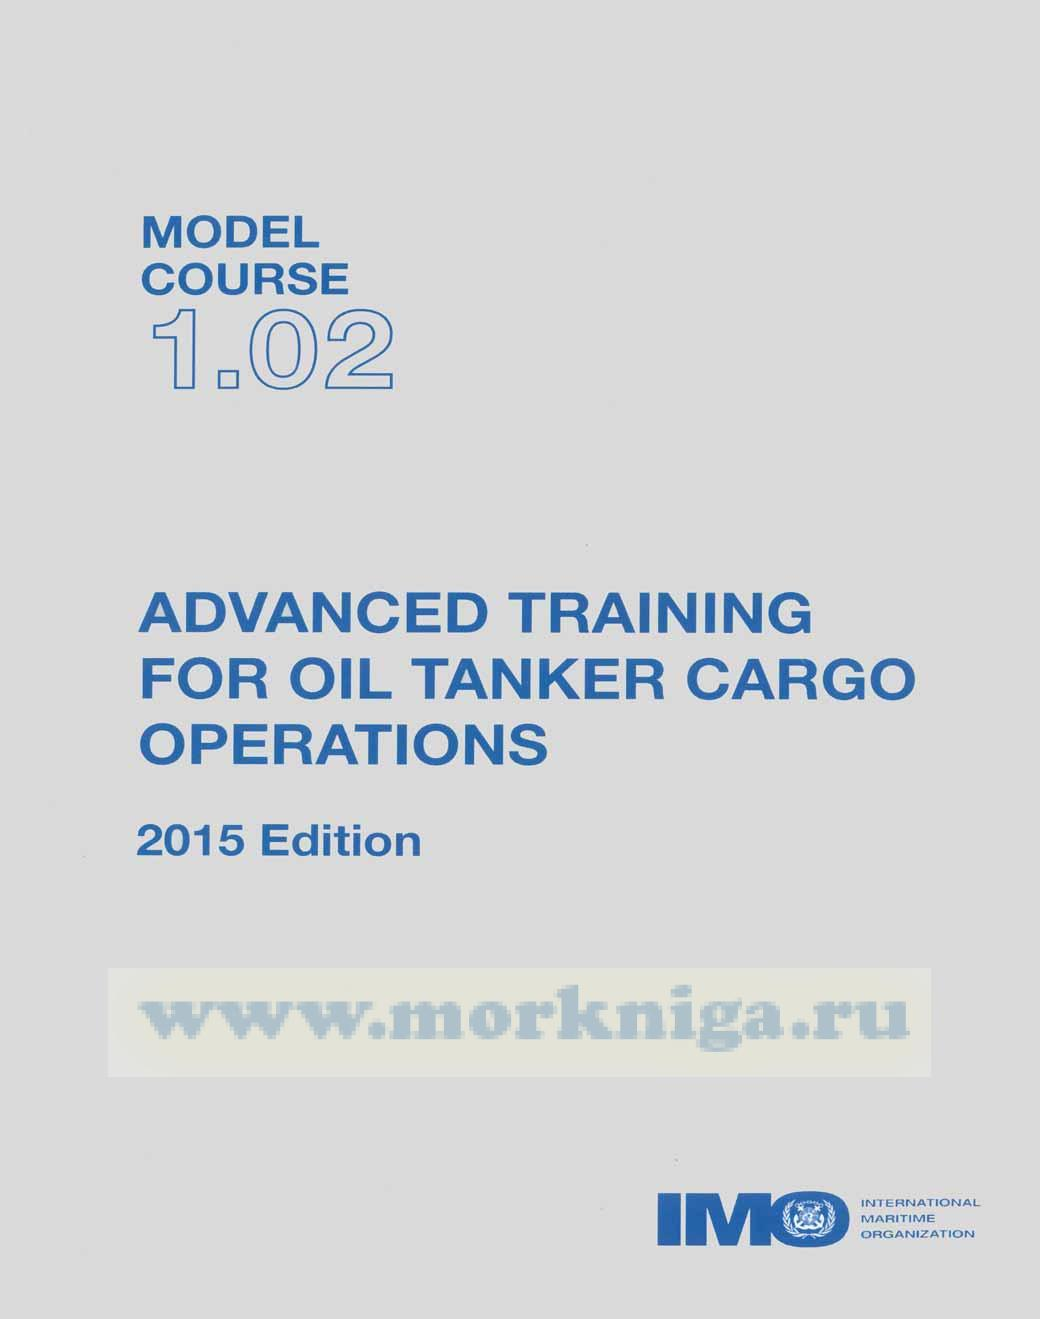 Advanced training for oil tanker cargo operations. Model course 1.02. 2015 Edition